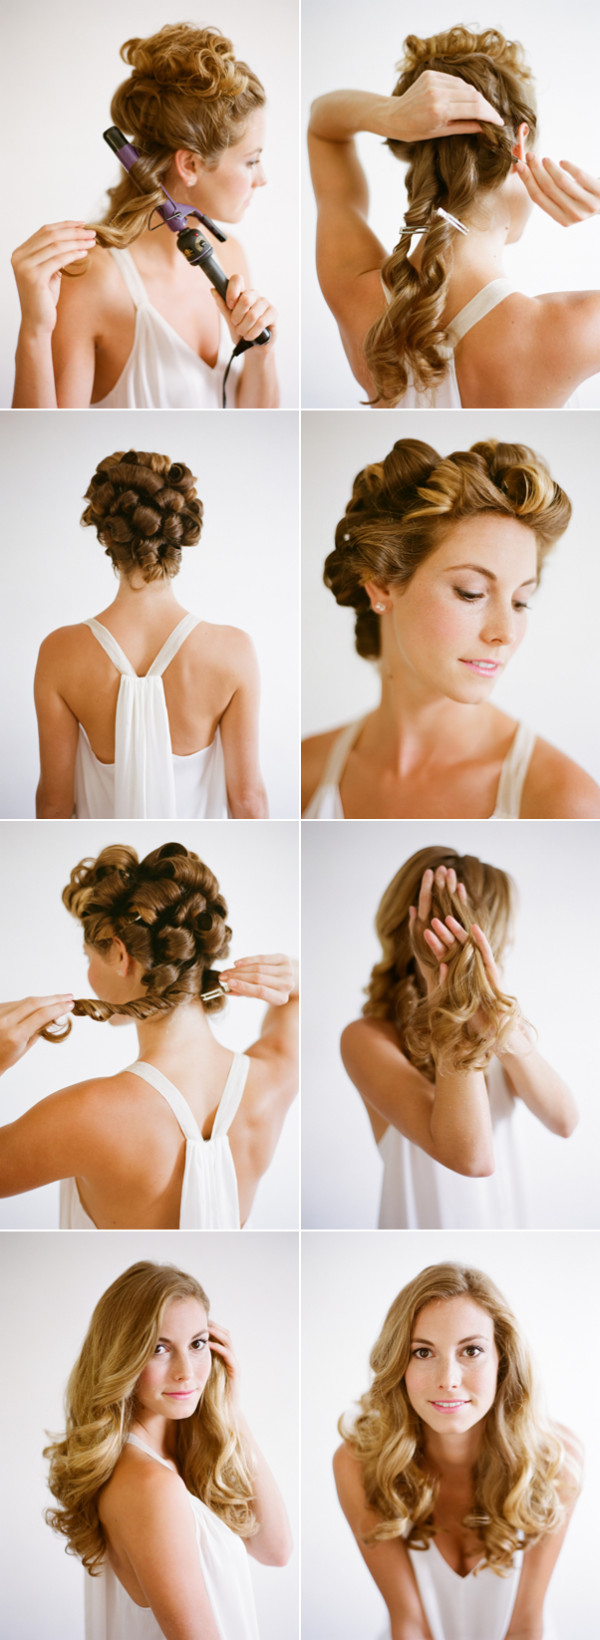 18 Great Ideas and Tutorials for Sophisticated Hairstyle (17)